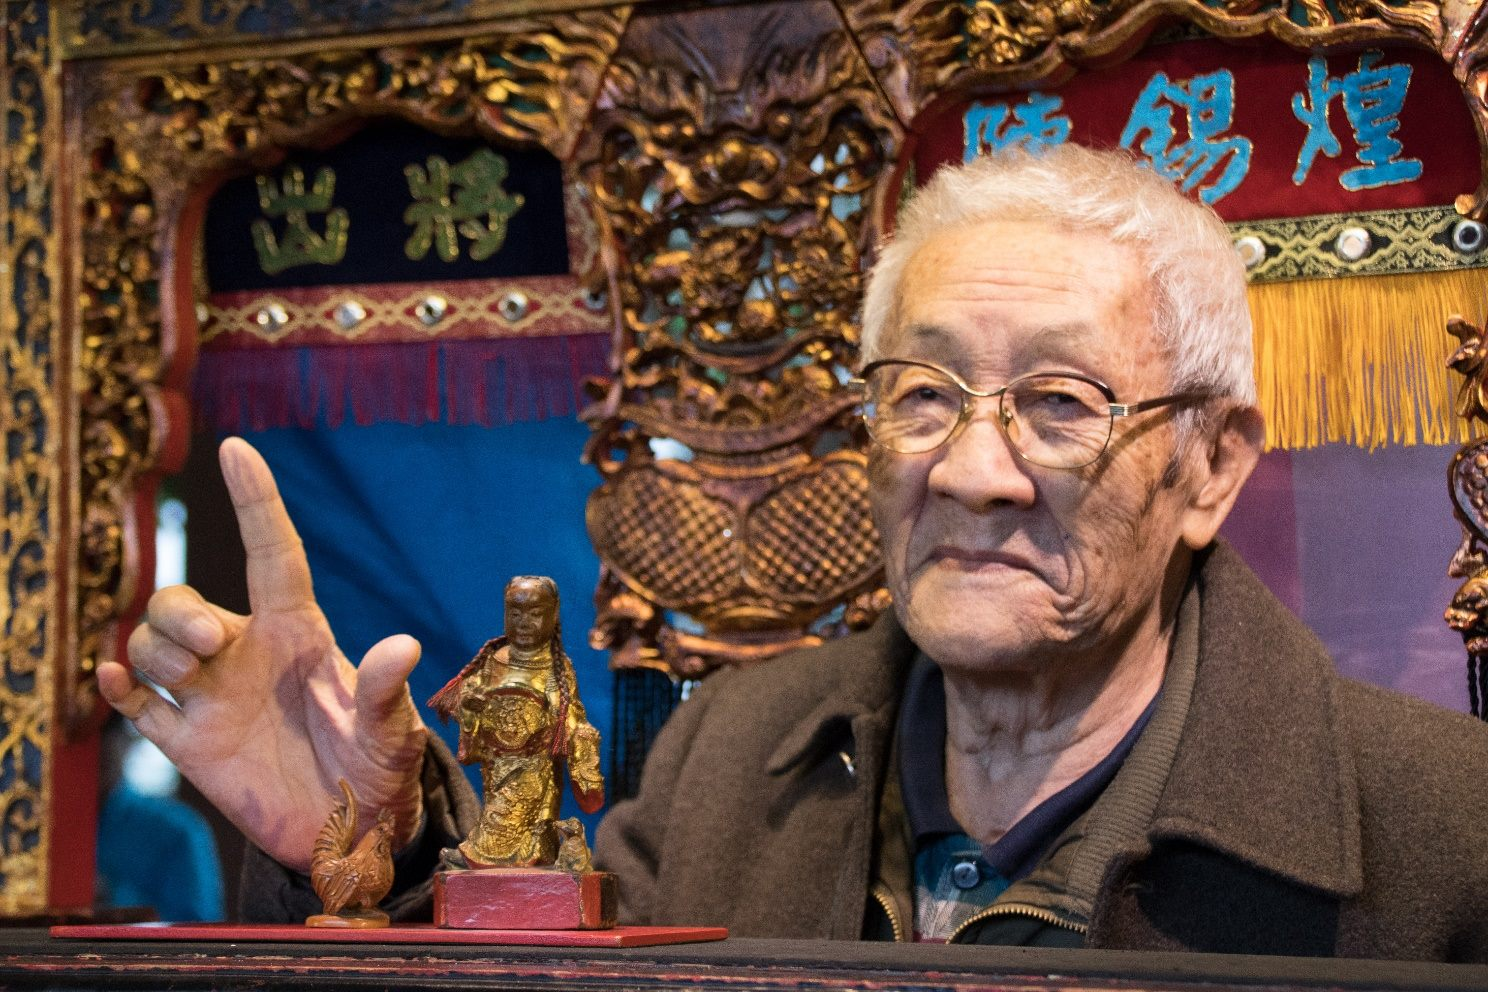 Chen Xihuang (陳錫煌) is a national treasure. At 89 years old, he still promotes the art of traditional Taiwanese puppet show.